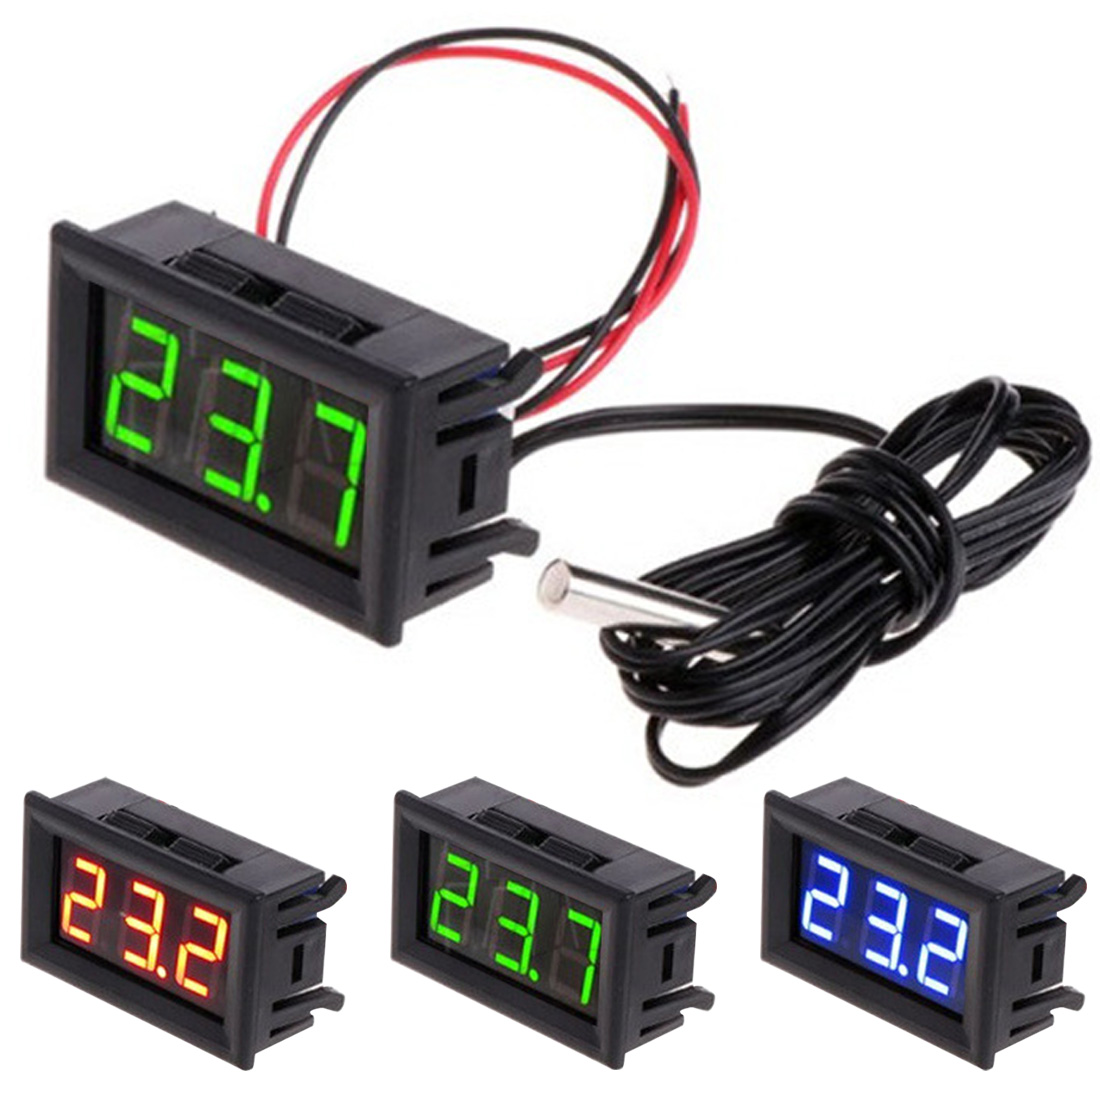 New -50 ~ <font><b>110</b></font> degree DC 5-12V Digital LED Thermometer Car Temperature Monitor Panel Meter High quality image